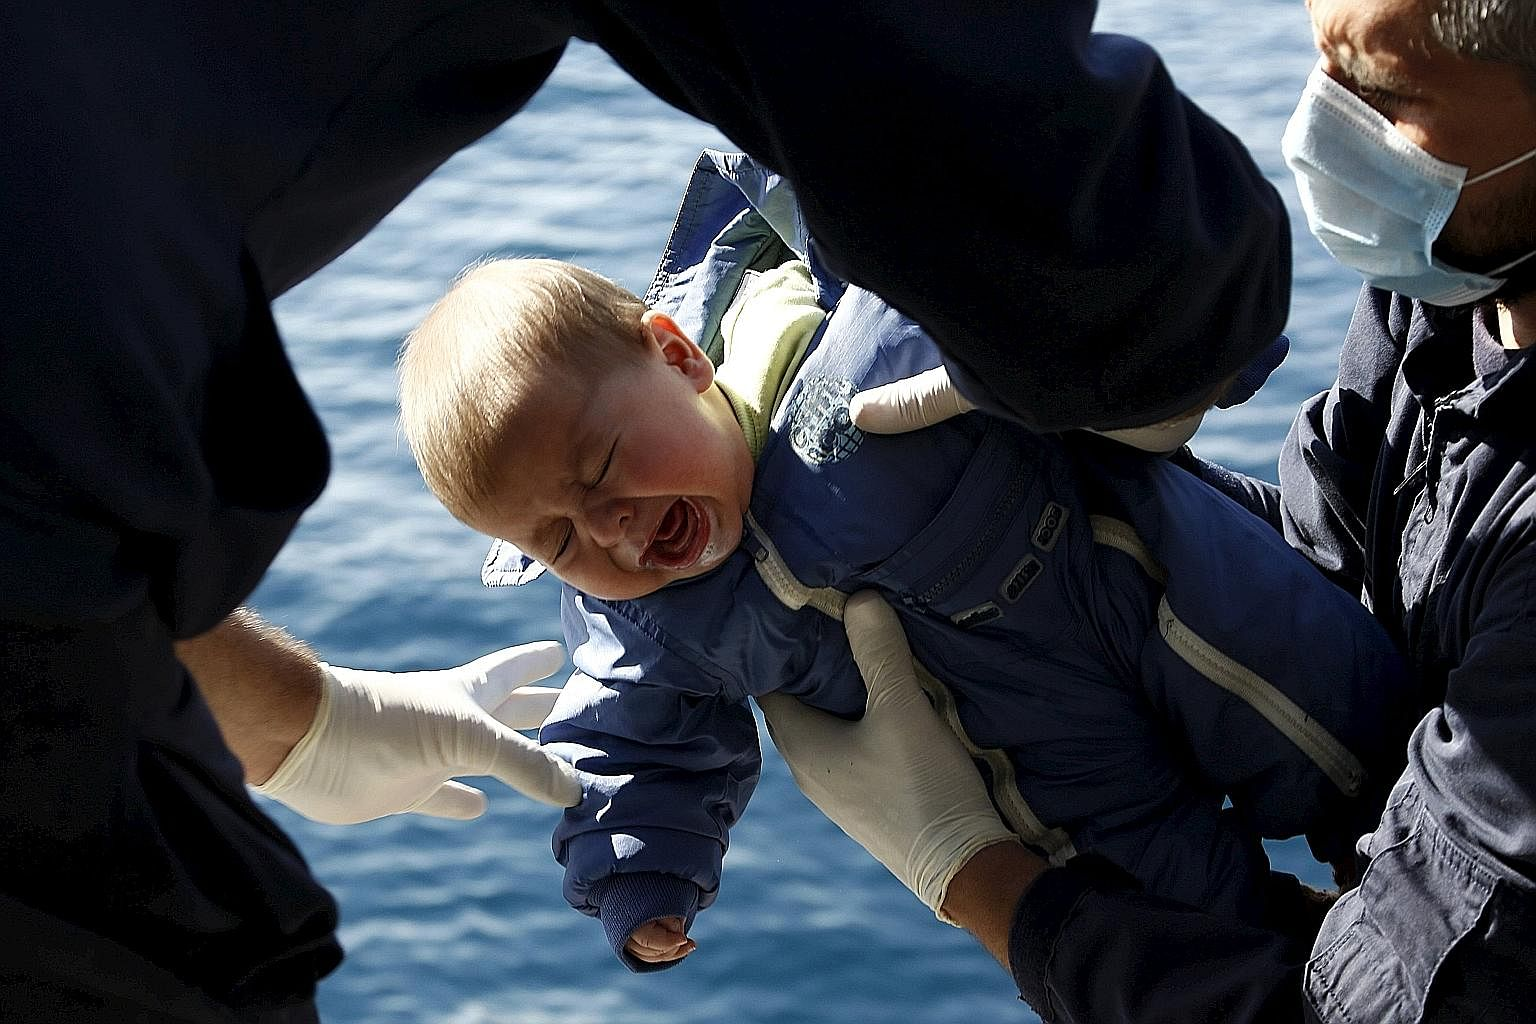 Greek Coast Guard officers transferring a baby to the safety of their vessel from a dinghy carrying refugees and migrants during a rescue operation in the open sea between the Turkish coast and the Greek island of Lesbos on Monday.